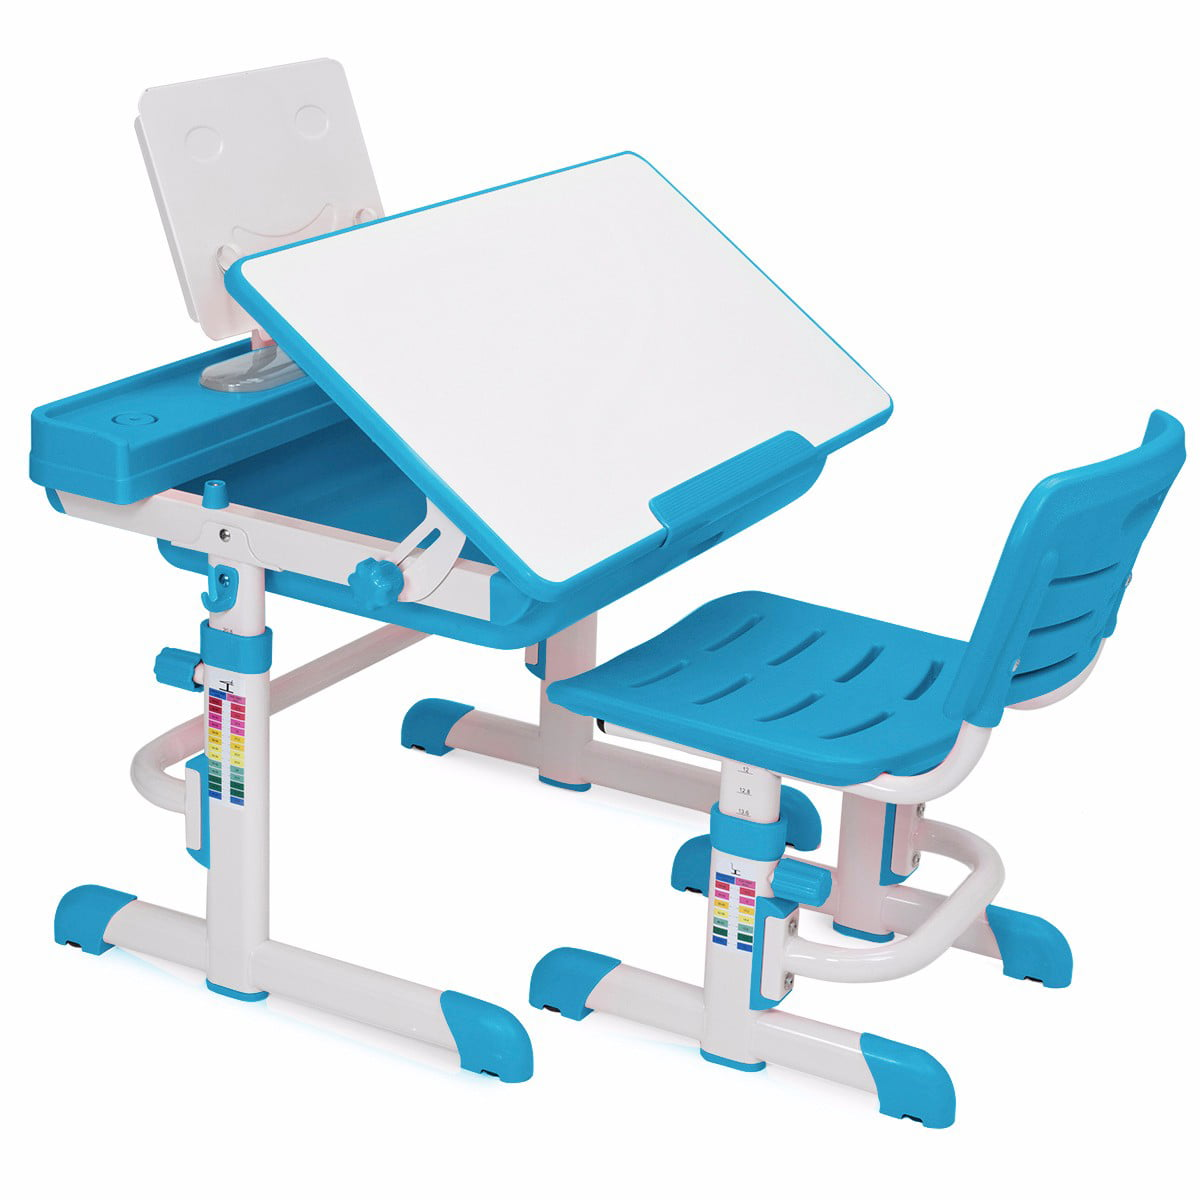 Kids Interactive Work Station Desk & Chair Adjustable Height, Blue ...